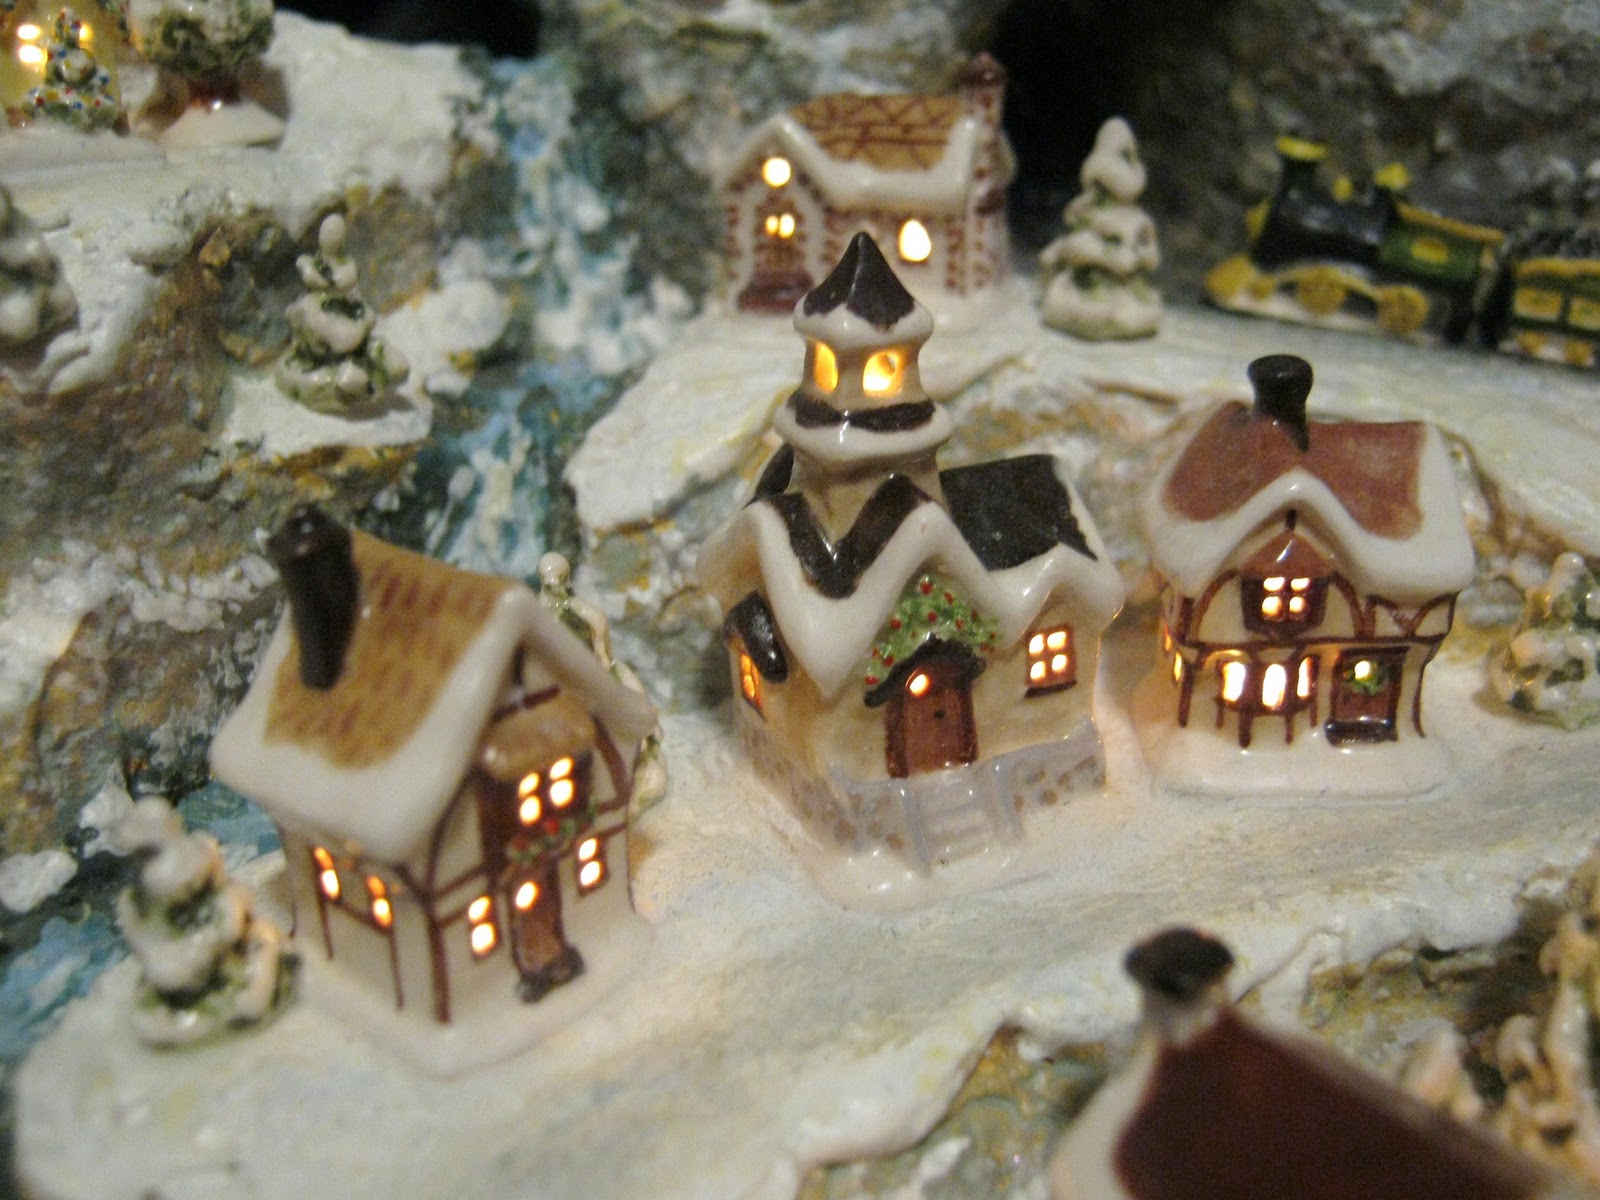 Sylvia Mobley at Pinerose Studio: Miniature Christmas Village